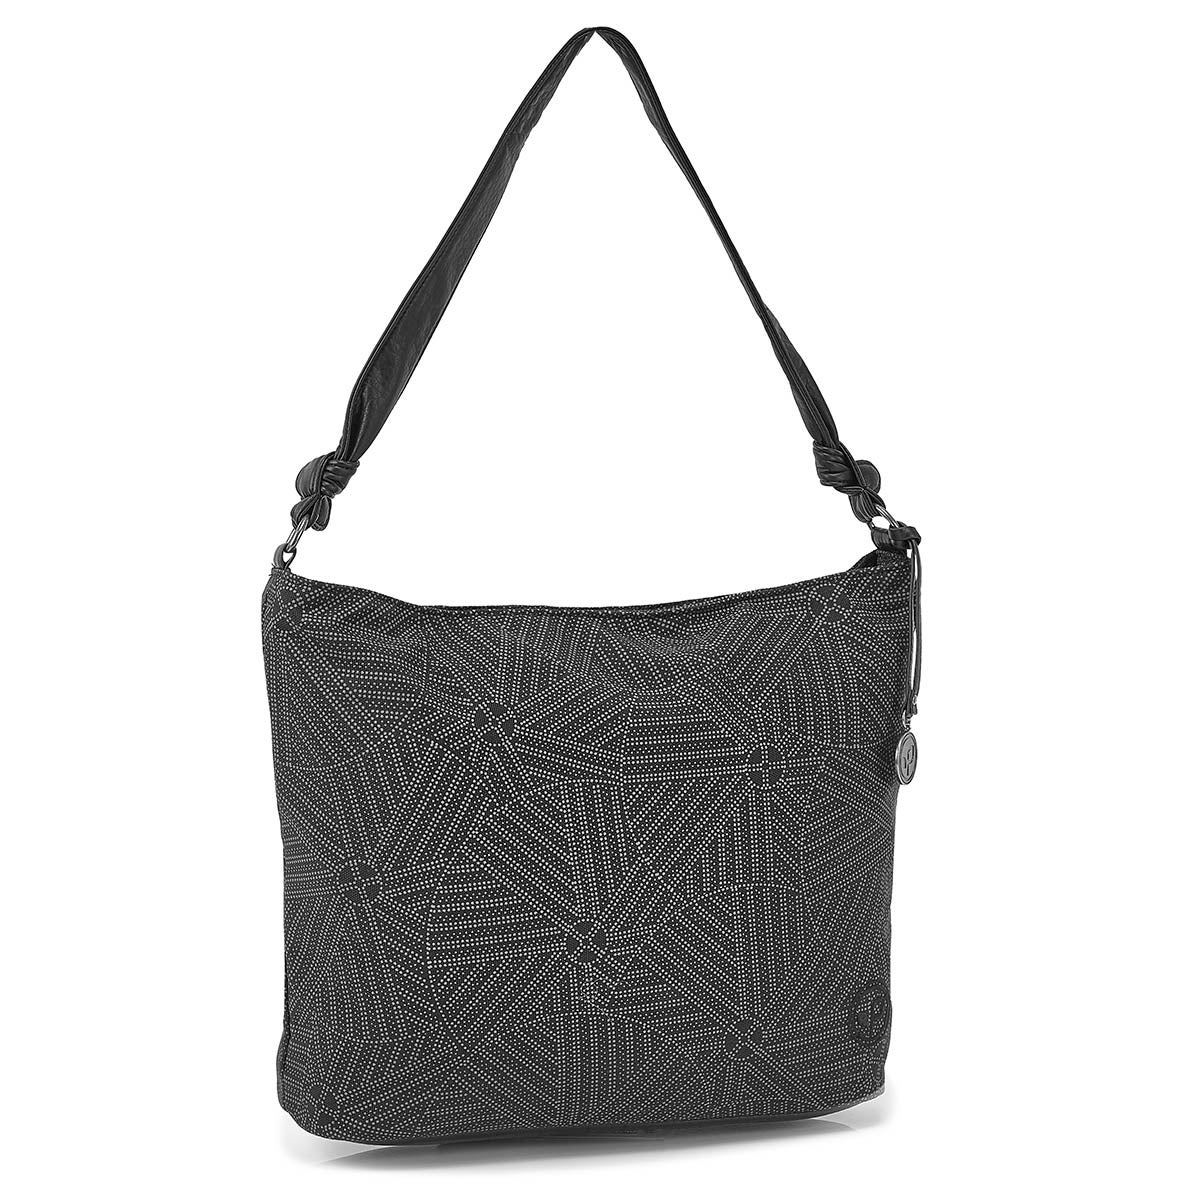 Lds Pushover night sky crossbody tote